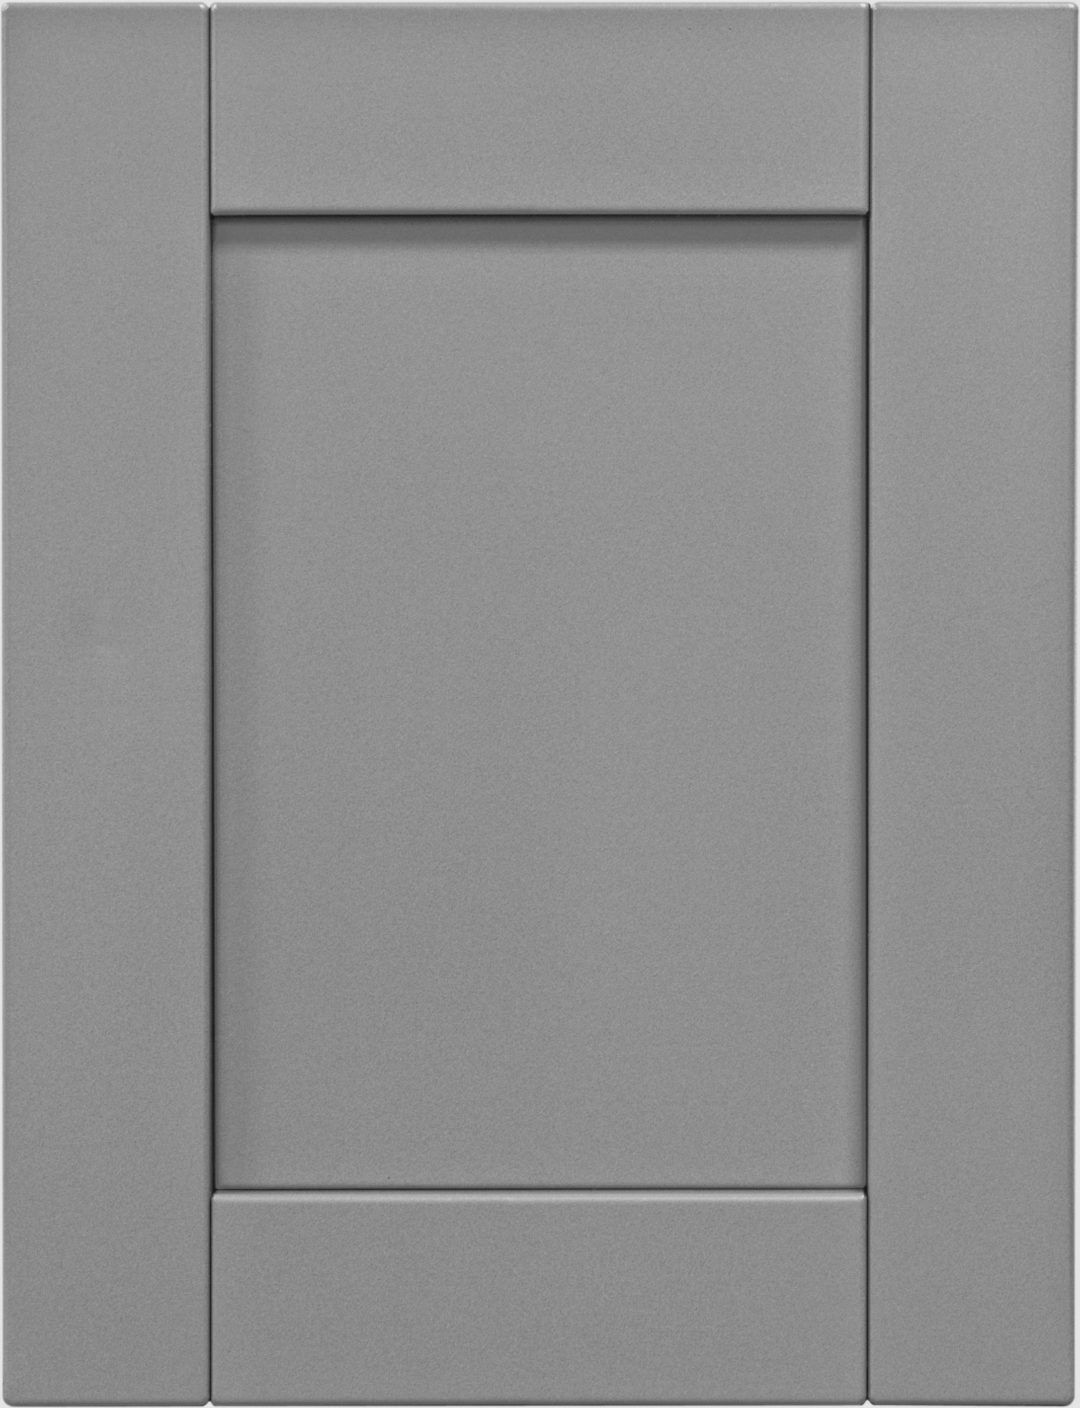 Stainless Steel Cabinet Doors Stainless Steel Kitchen Cabinets Steel Kitchen Cabinets Stainless Steel Cabinets